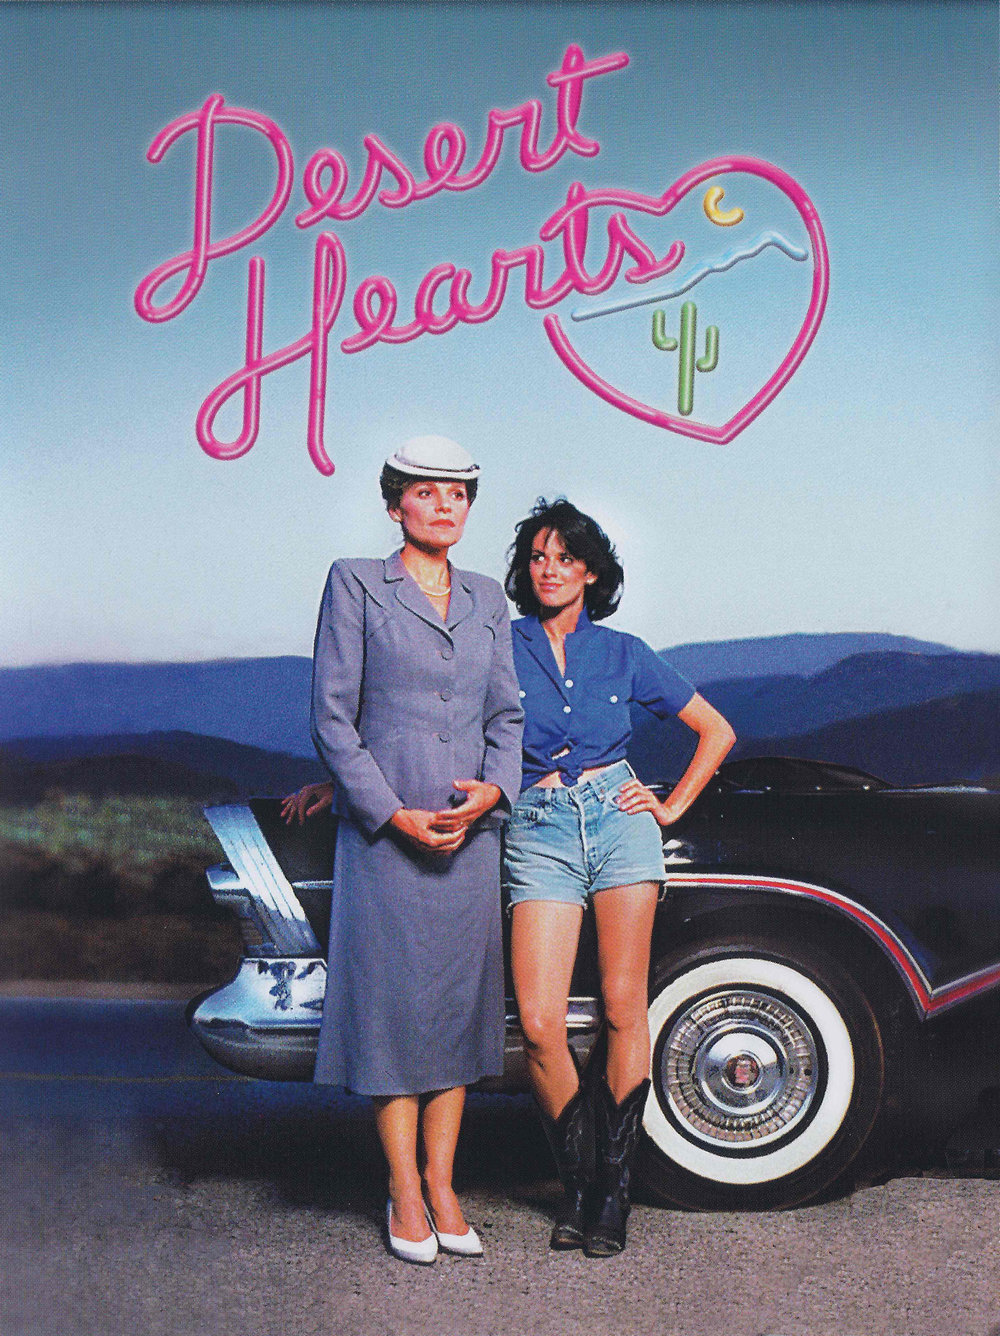 high-res_desert_hearts_dvd no logos.jpeg